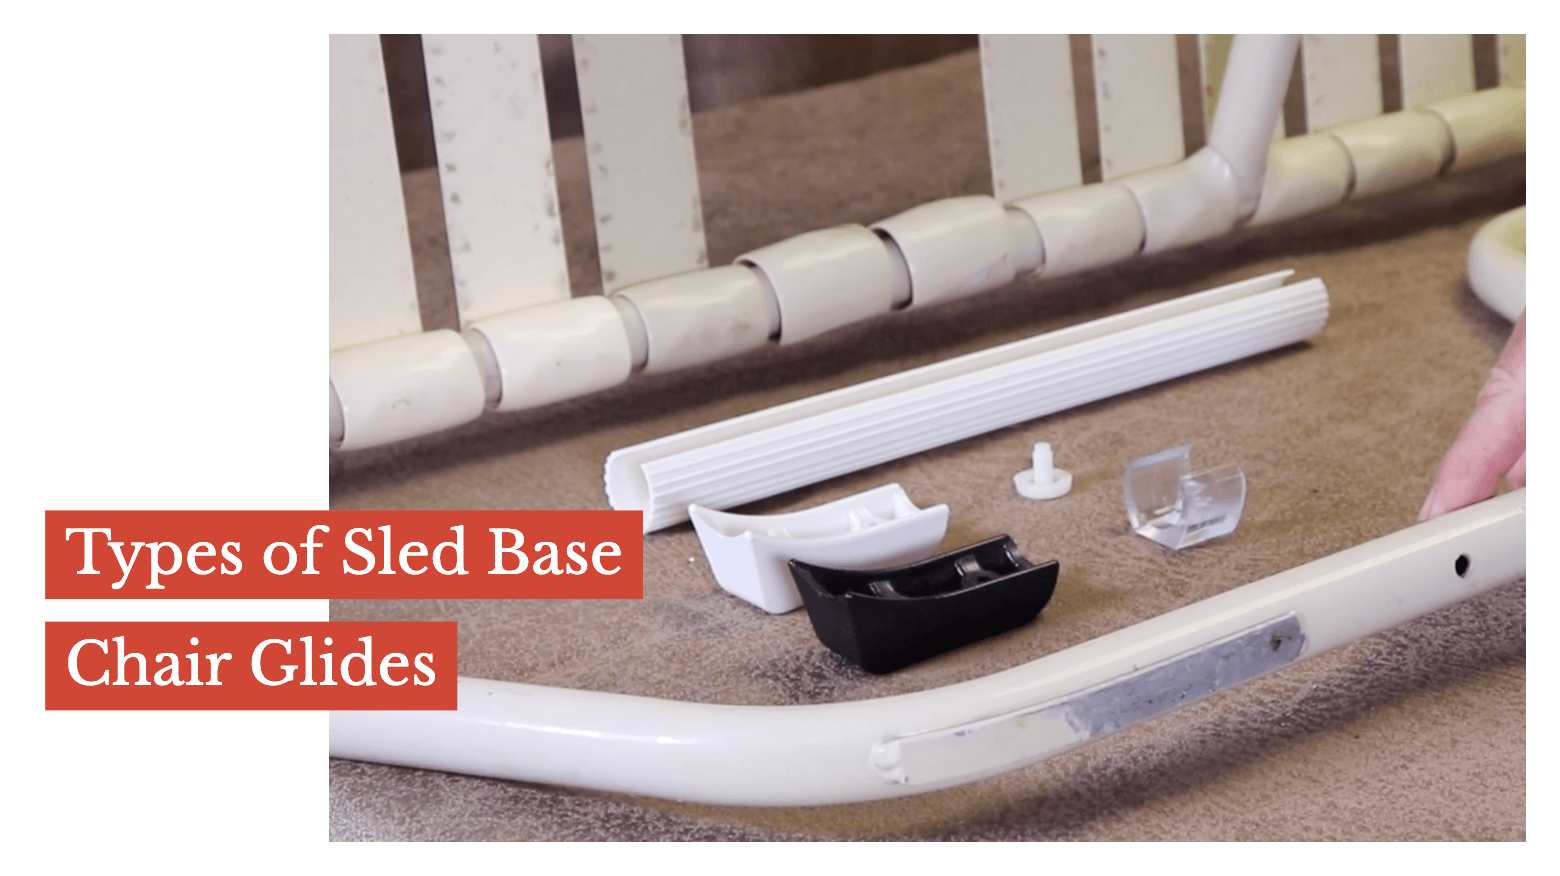 Types of Sled Base Chair Glides